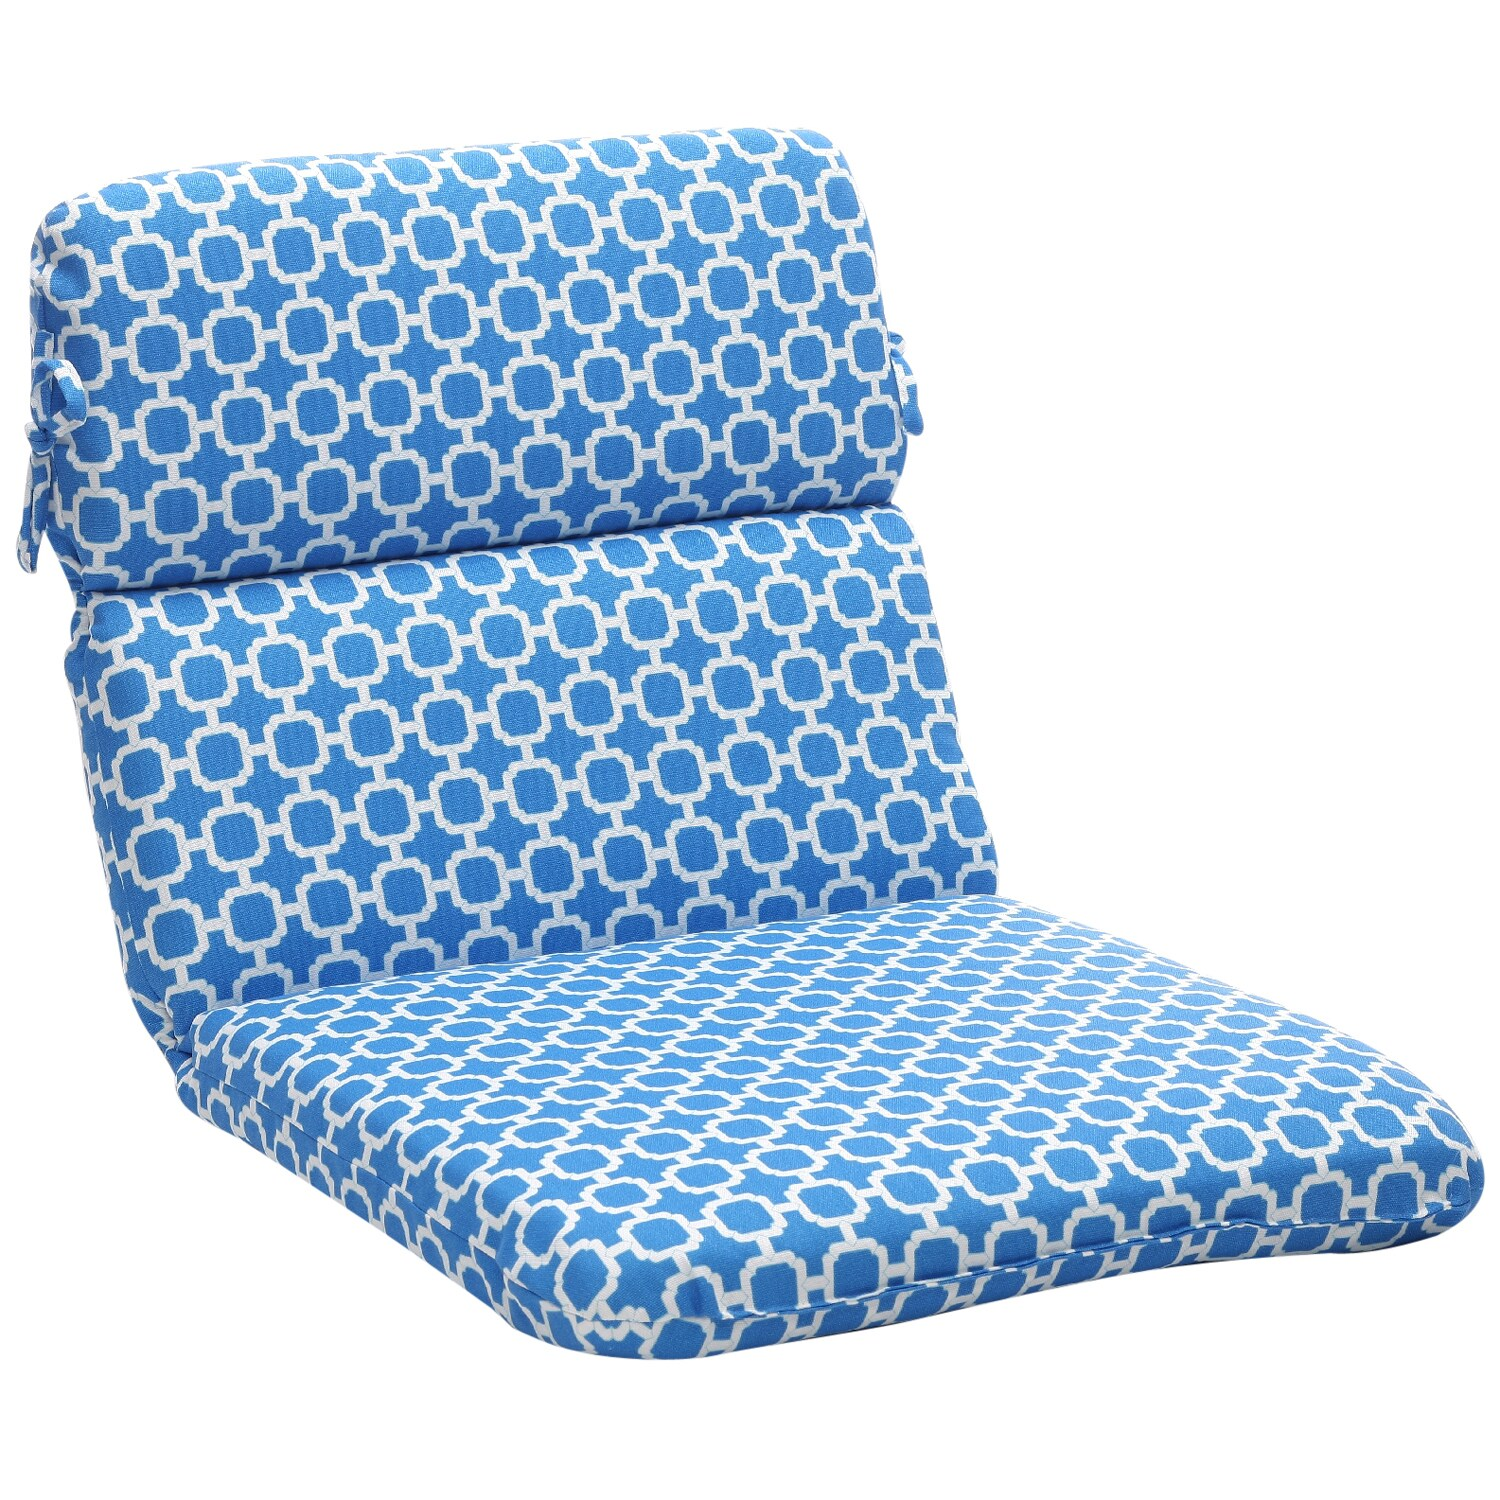 Pillow Perfect Blue/ White Geometric Outdoor Cushion